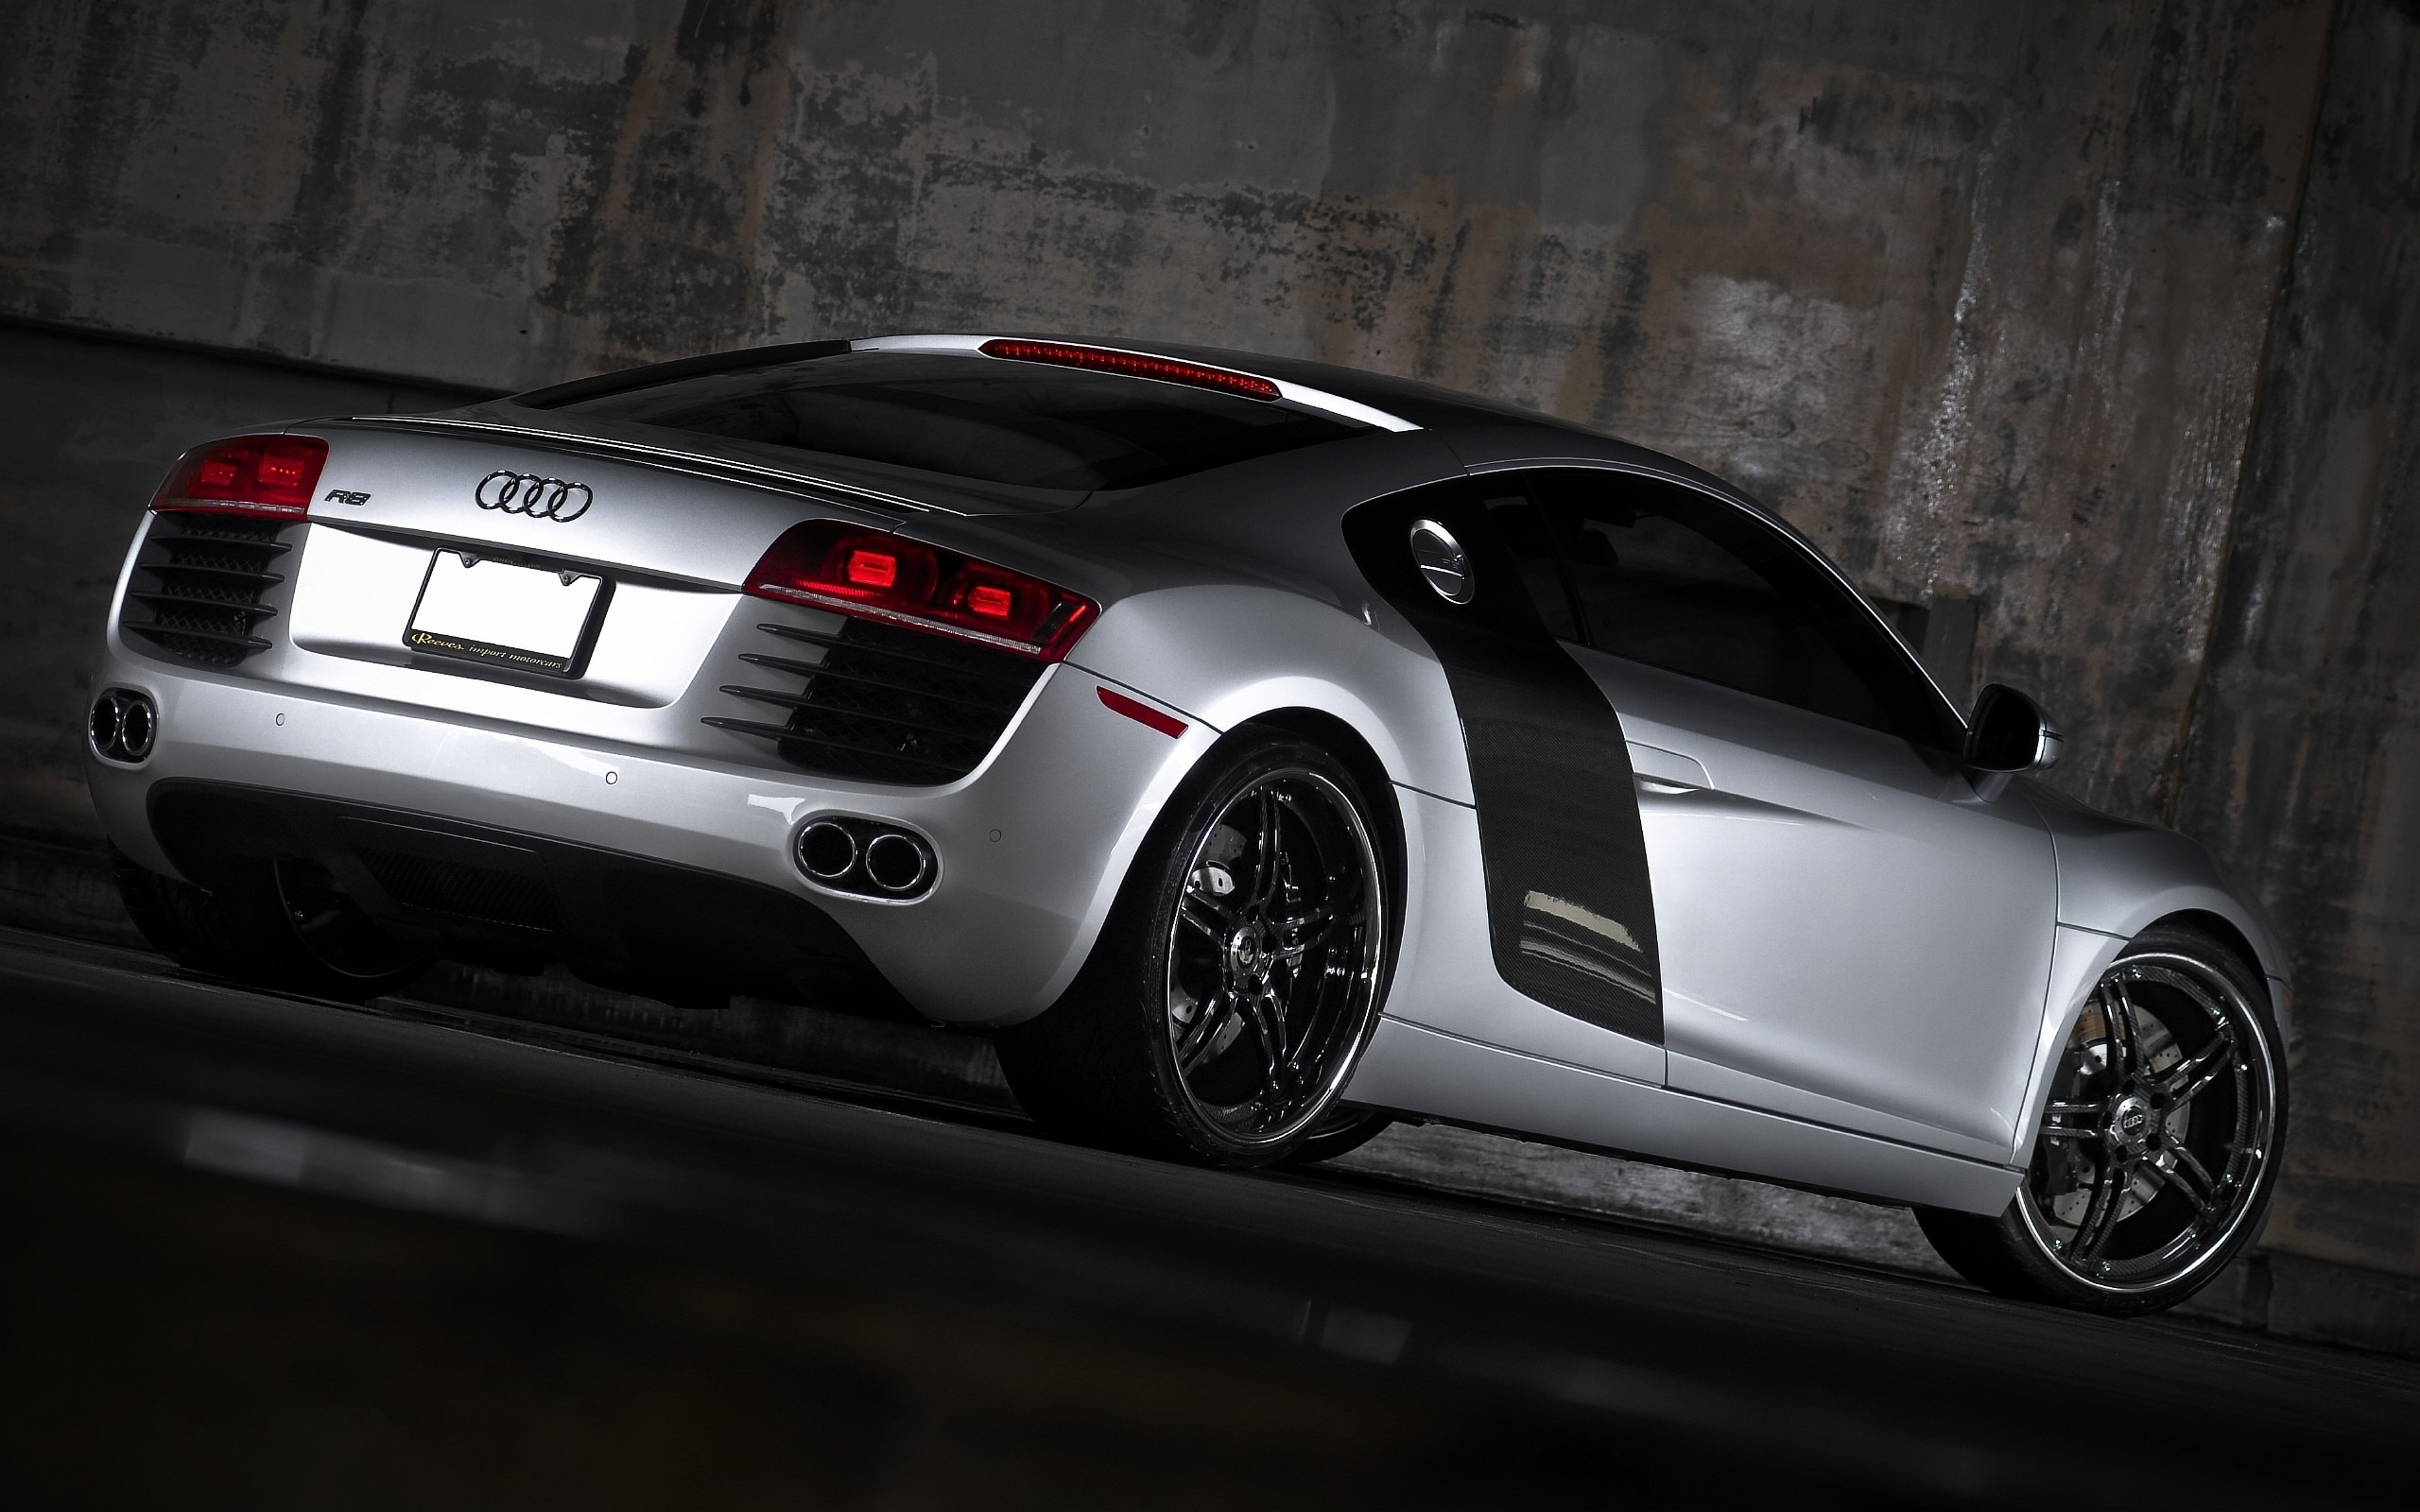 audi r8 wallpapers high quality download free. Black Bedroom Furniture Sets. Home Design Ideas